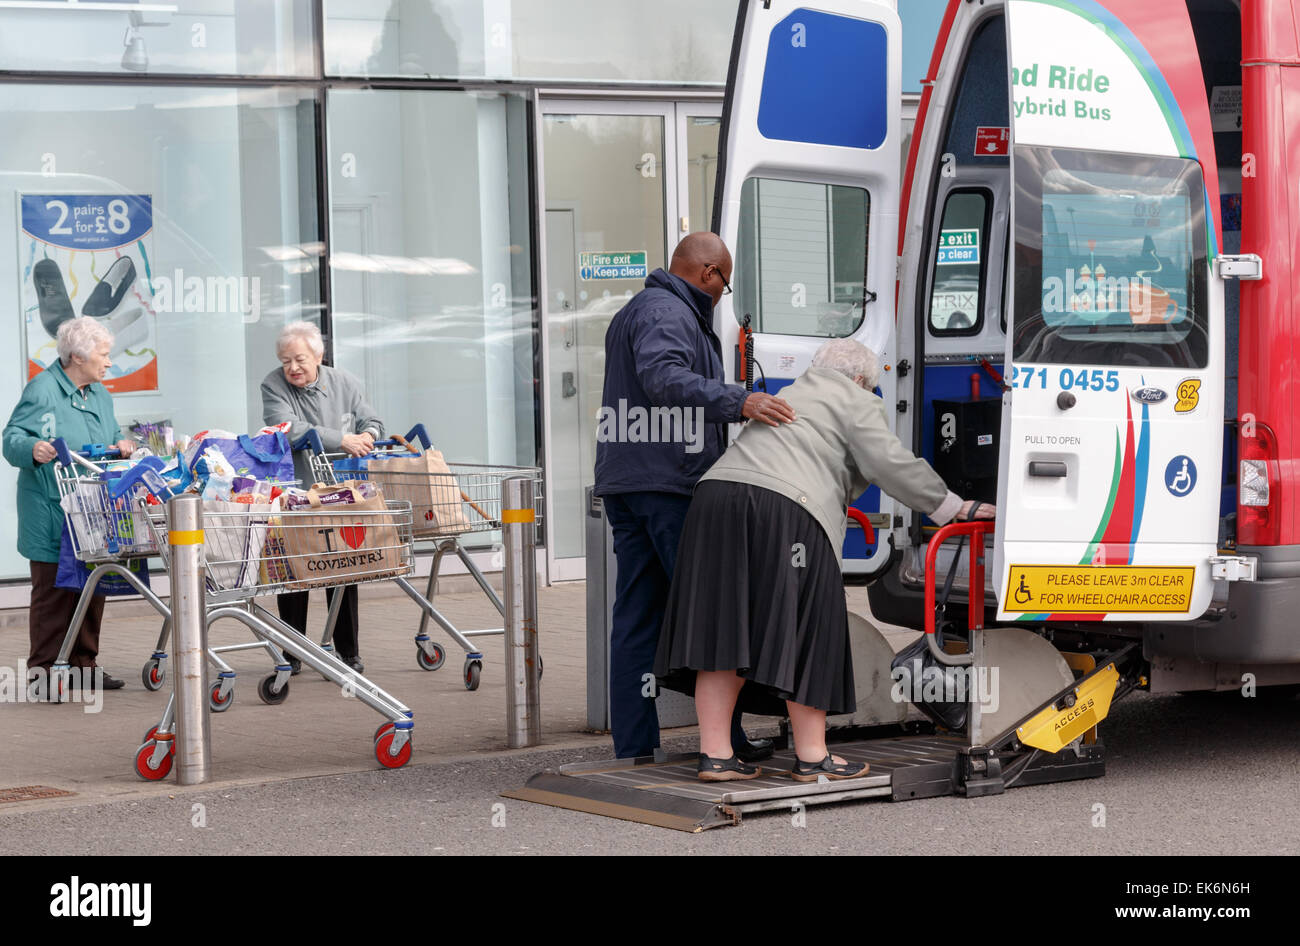 Elderly woman being helped aboard a lift at the rear of a minibus especially designed for disabled access.  In Coventry. - Stock Image